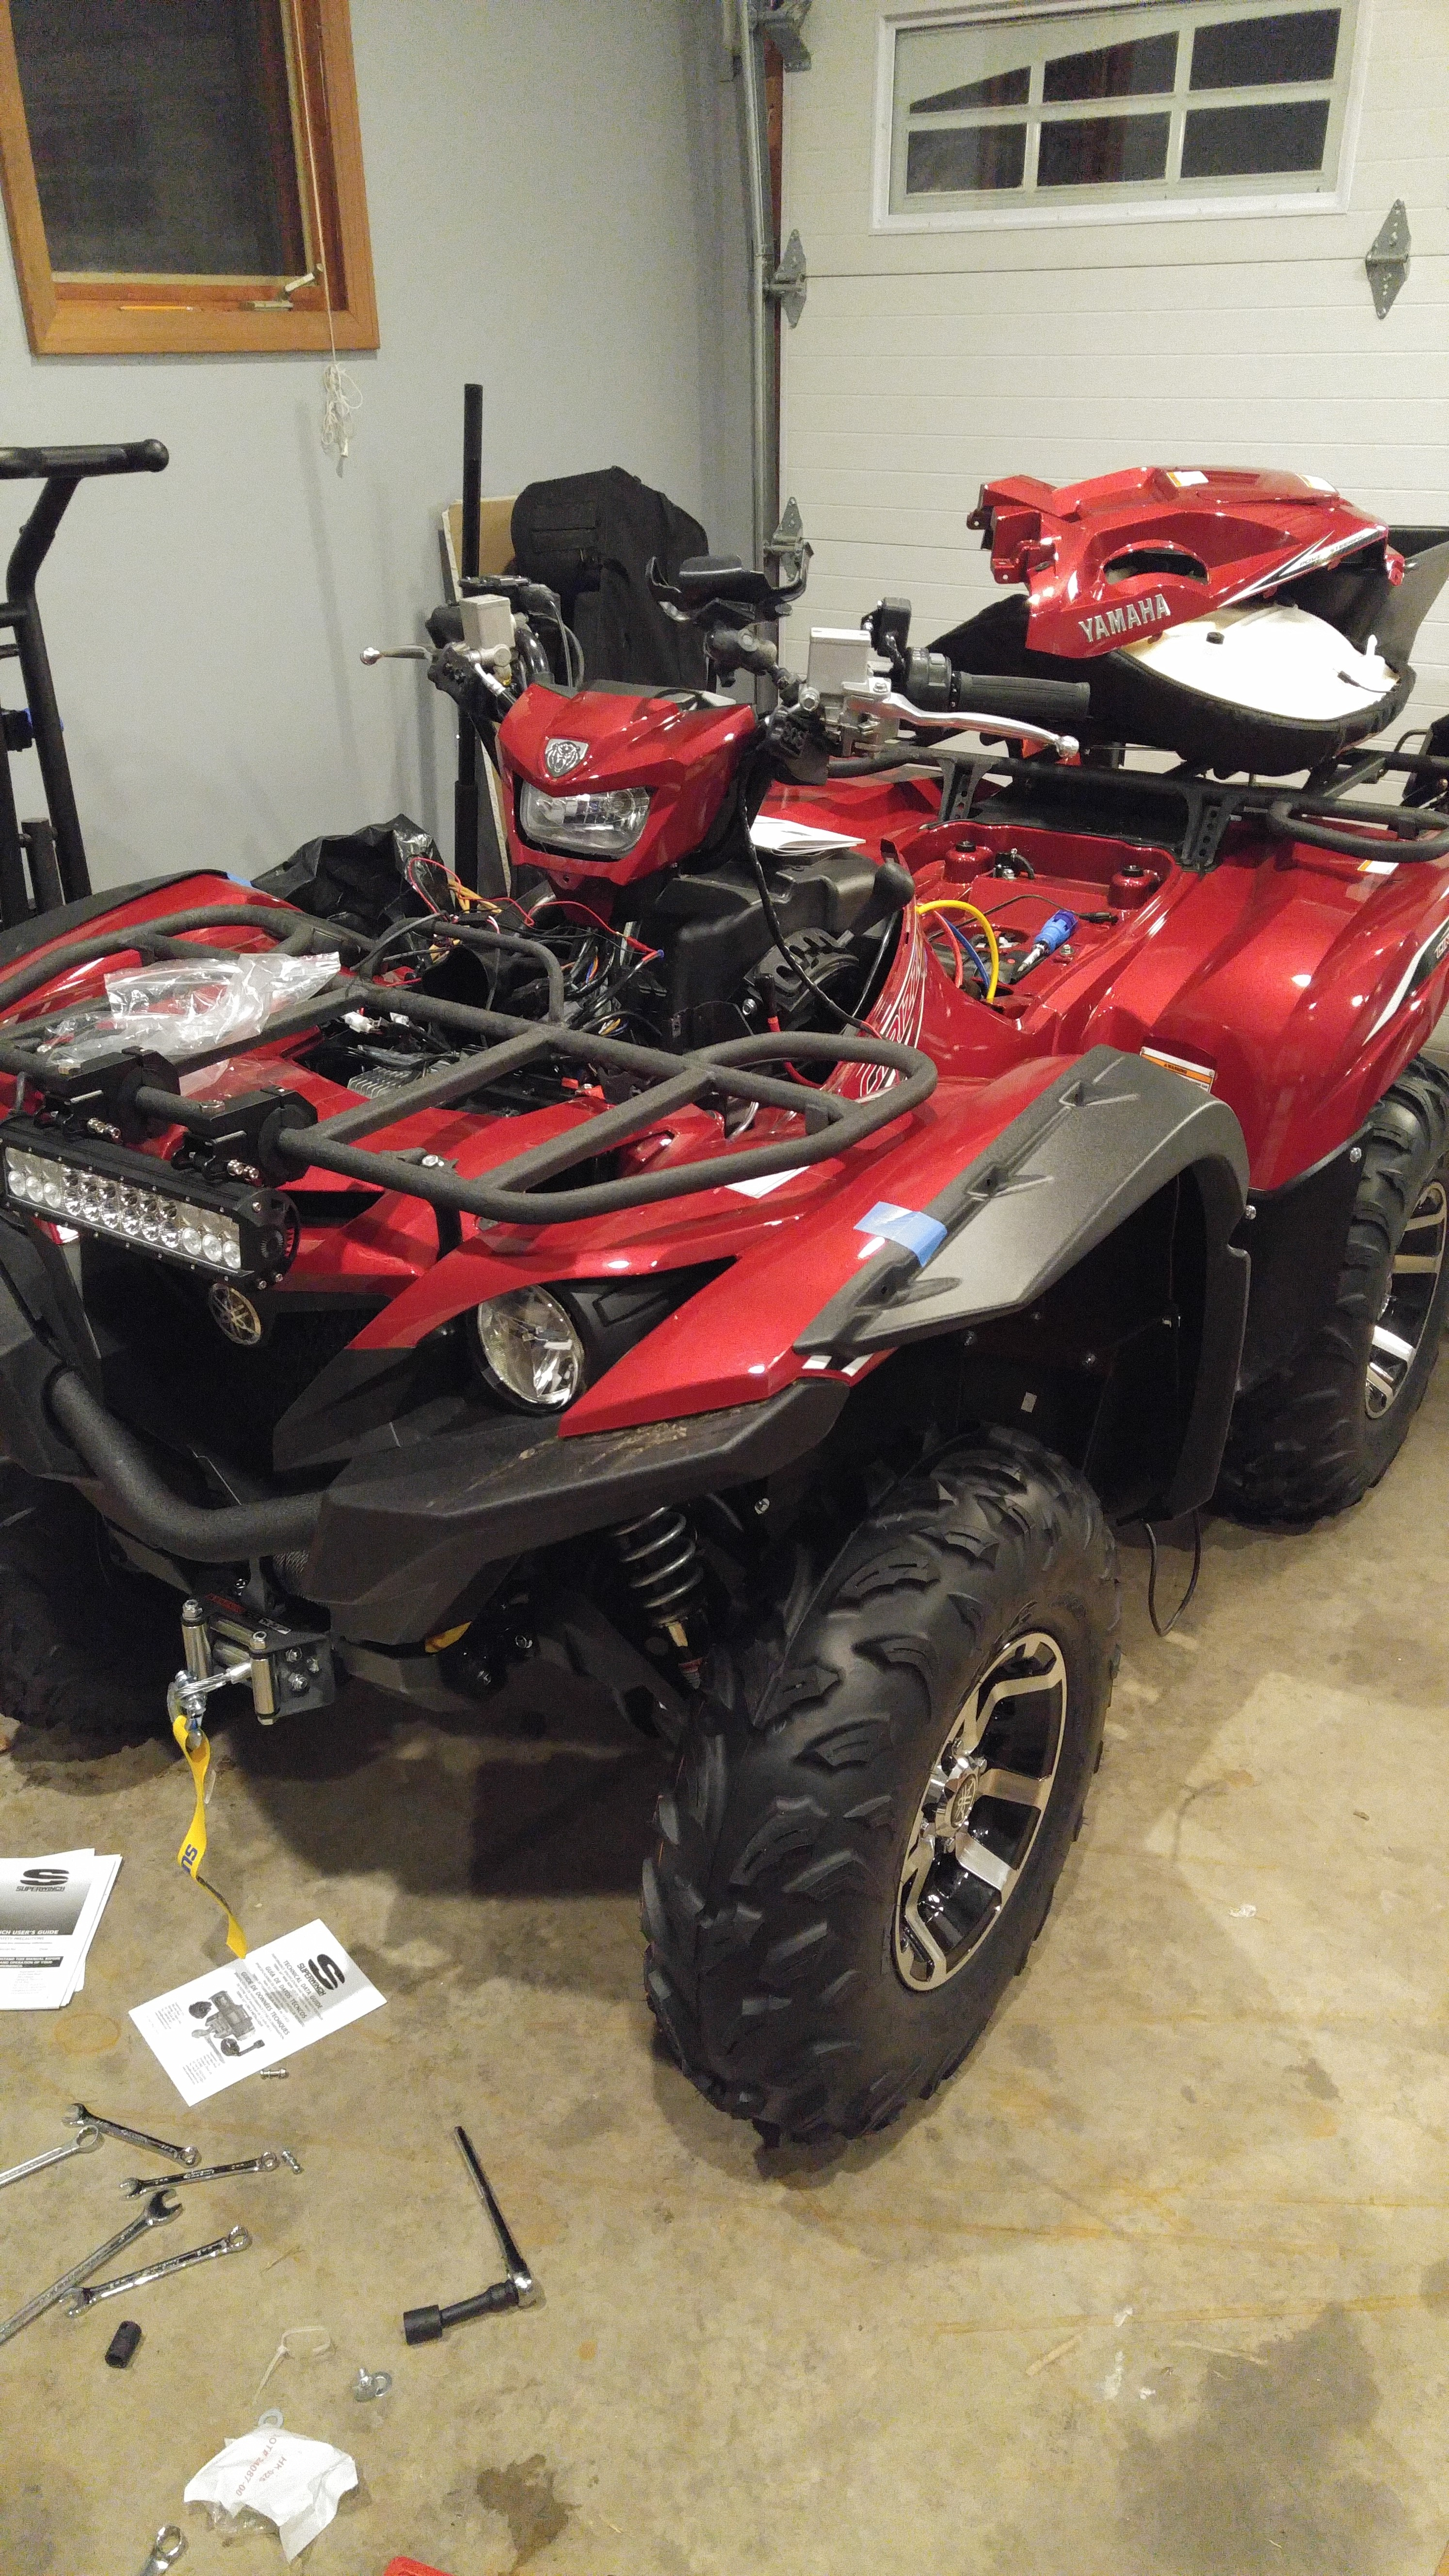 2016 grizzly with over fenders anyone yamaha grizzly for Yamaha grizzly atv